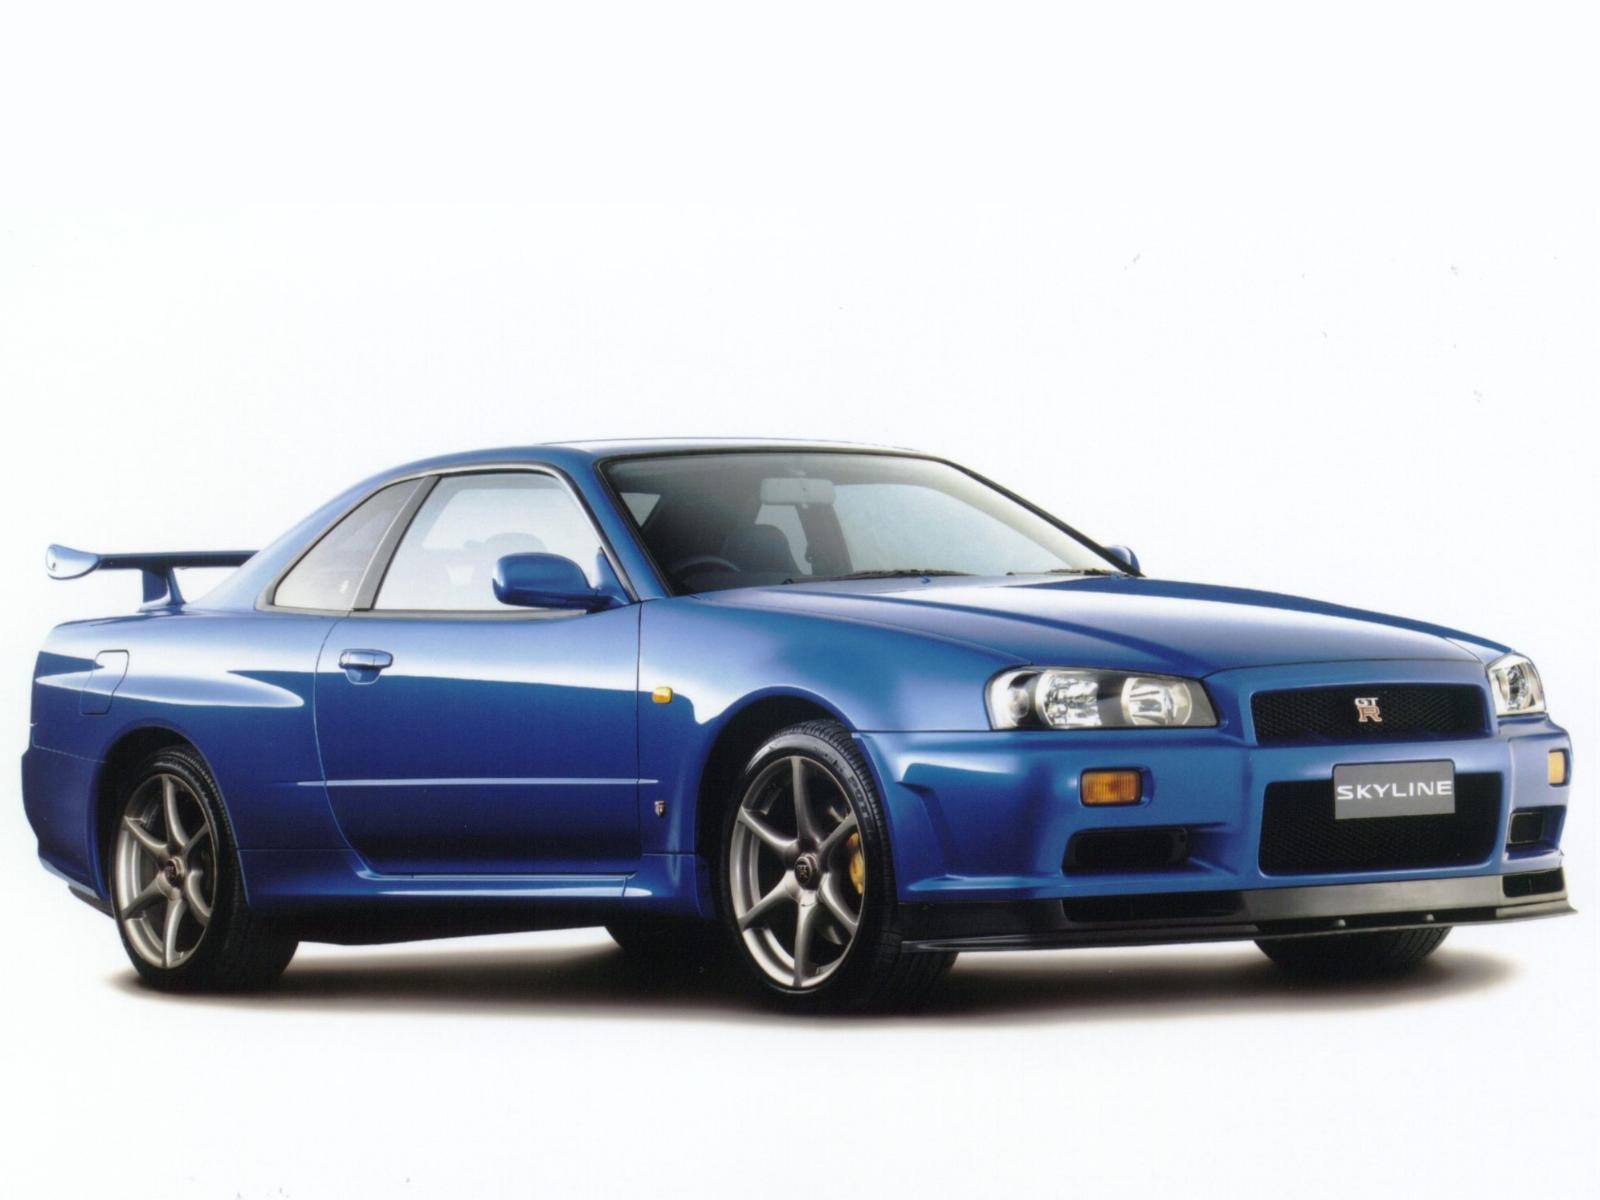 Nissan Skyline Gt R Photos Photogallery With 26 Pics